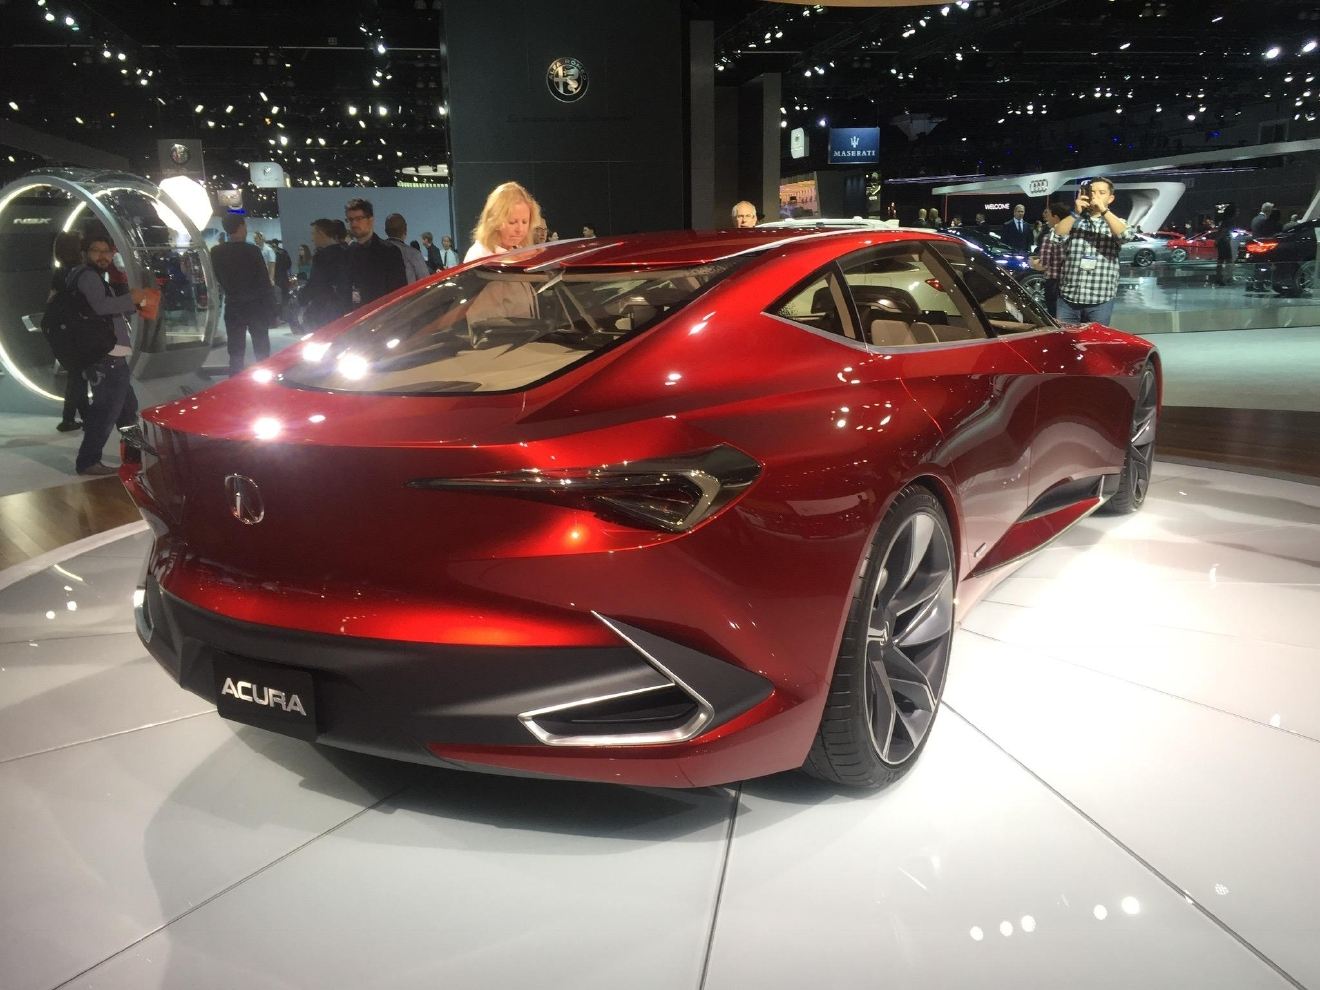 Acura Precision Concept Gives A Hint Of The Future Design Direction For  Acura. The 2016